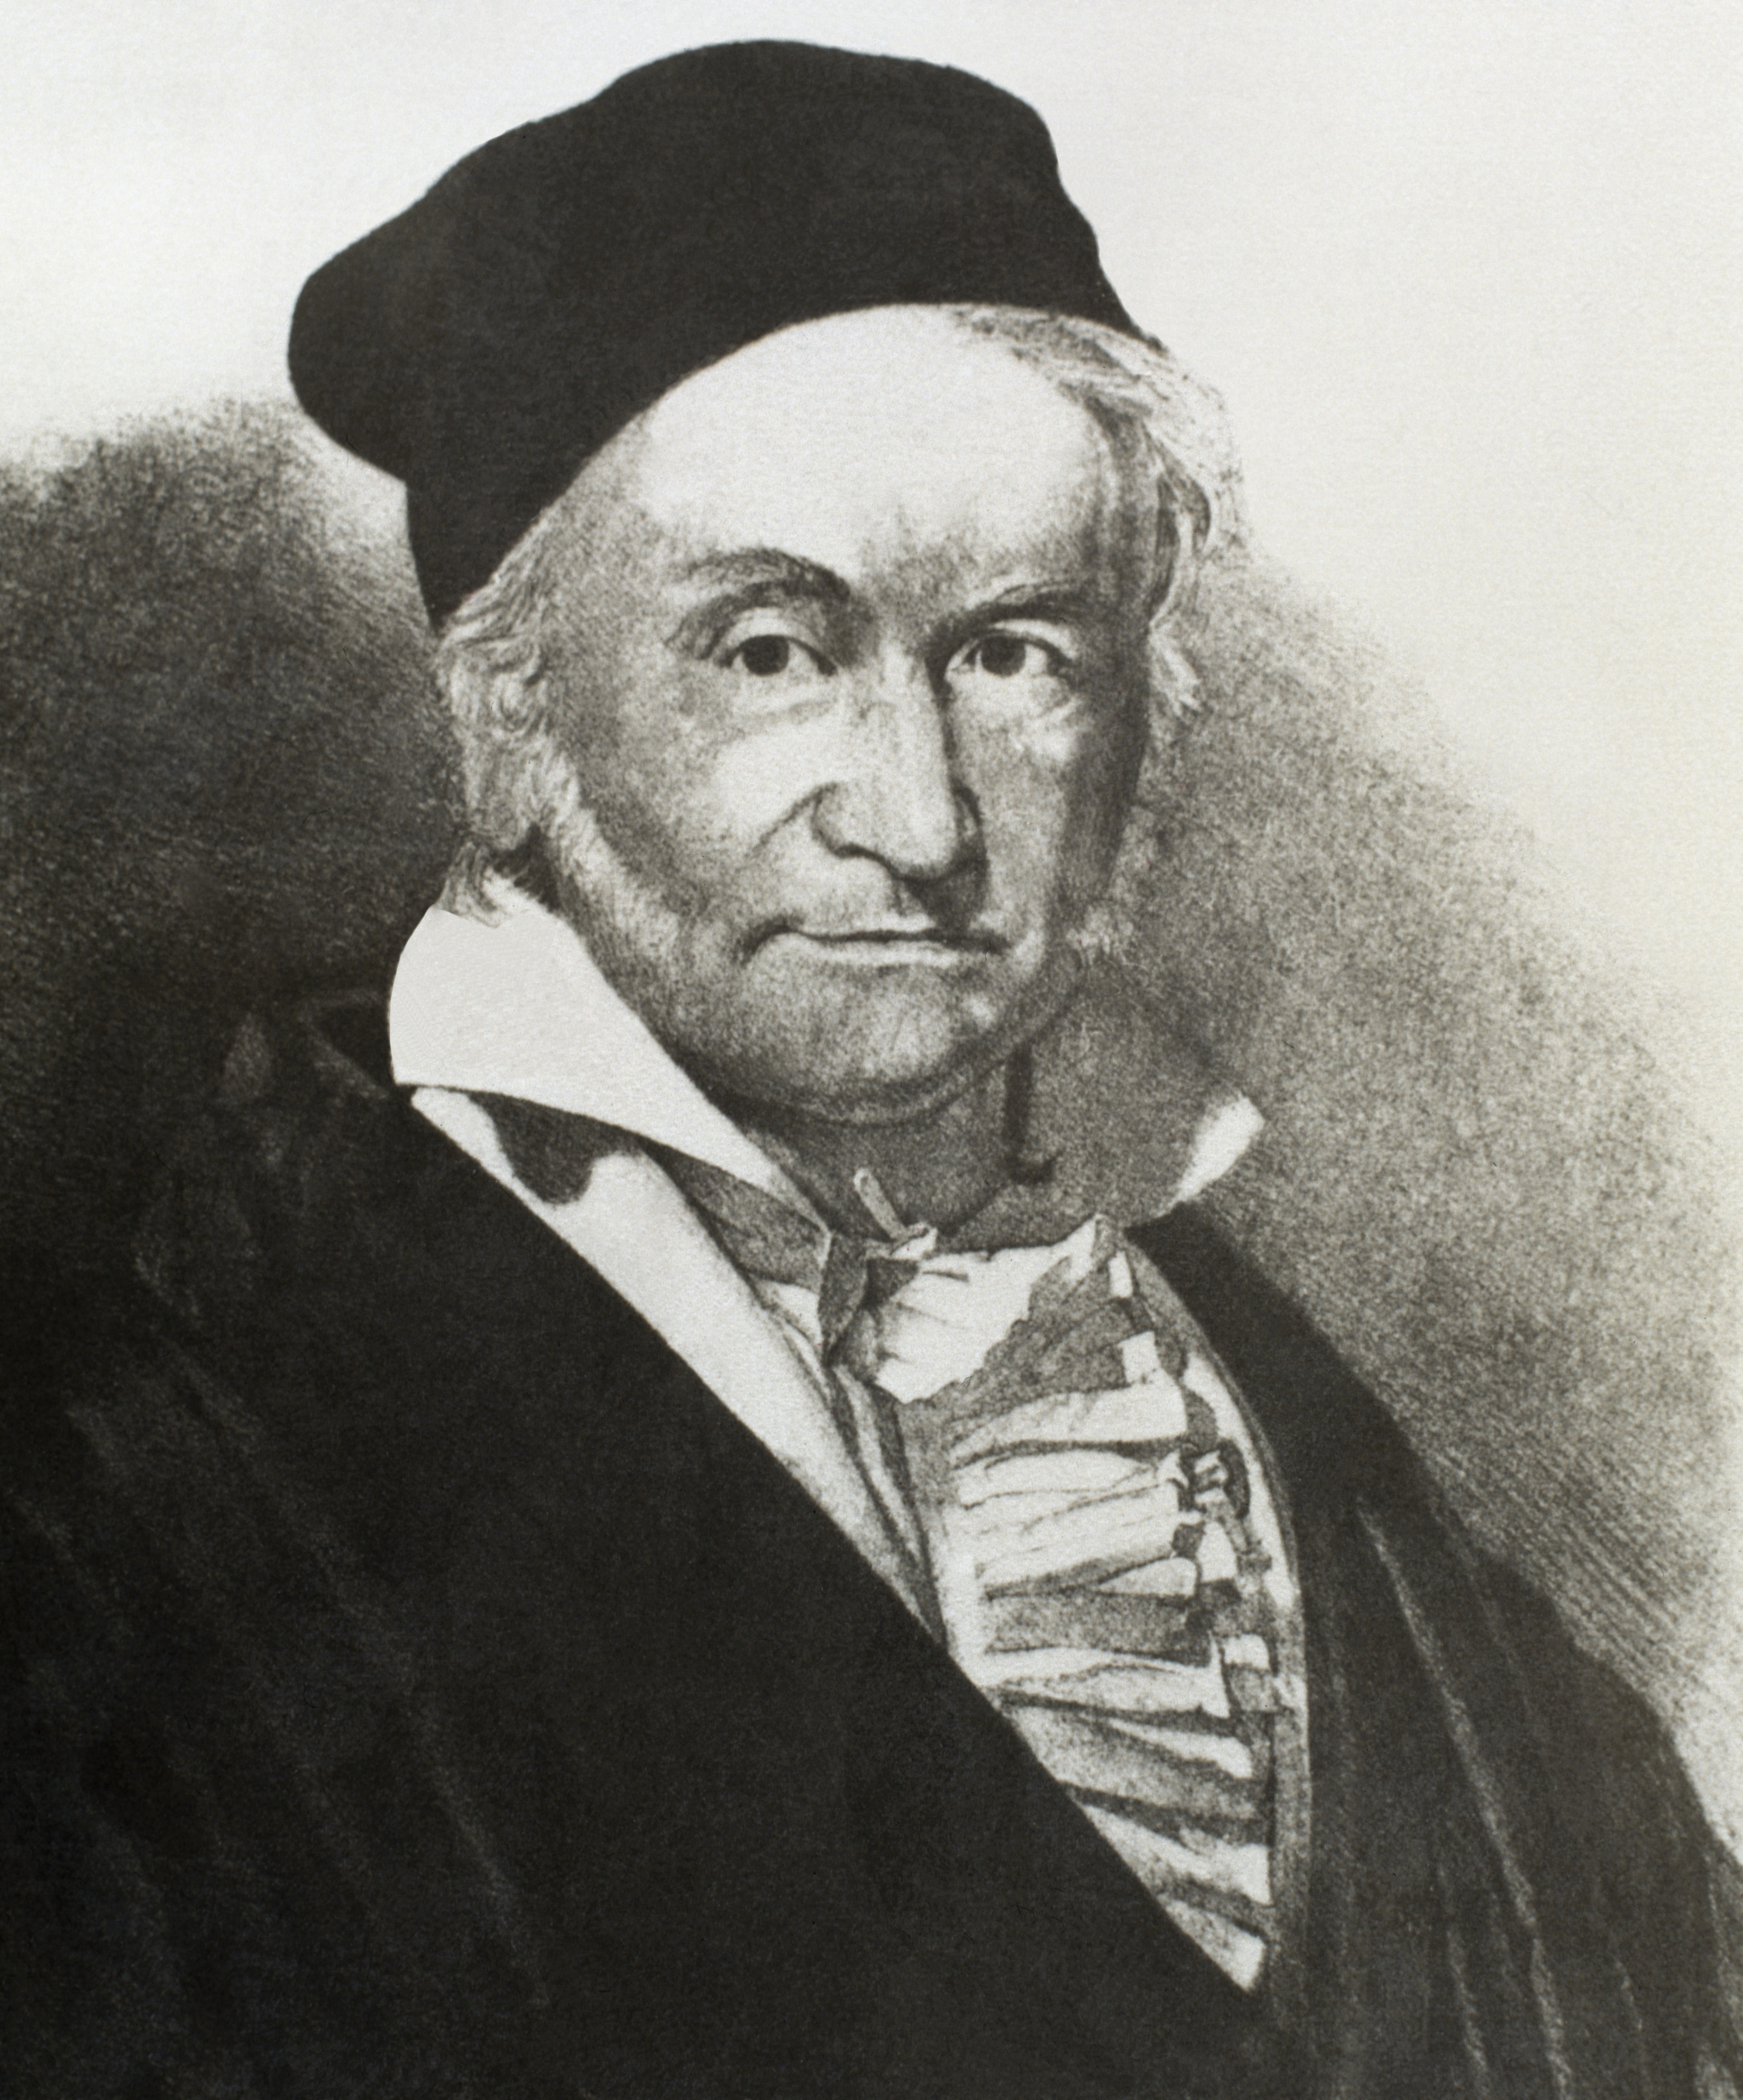 Carl Friedrich Gauss (1777-1855). German mathematician. Engraving. 19th century. Gauss' 241st birthday was celebrated with a Google Doodle.